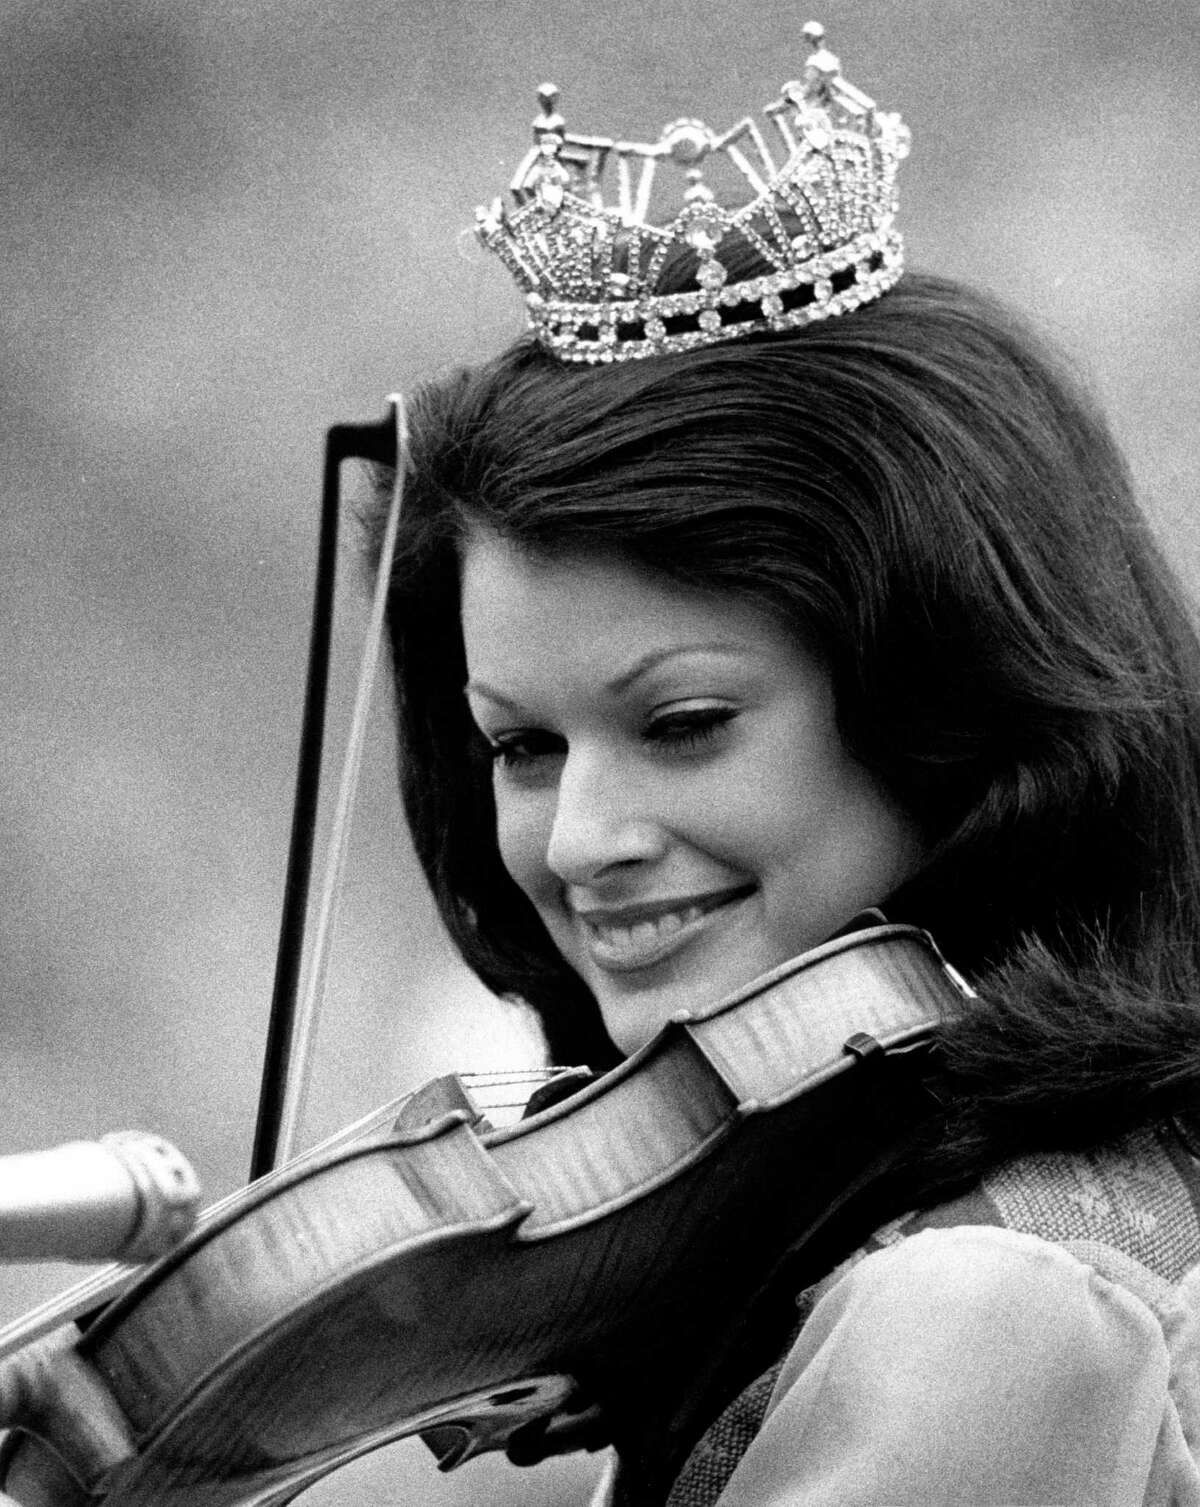 Judy Mallett, the 1973 Miss Texas, and her fiddle before the start of Super Bowl VIII on Jan. 13, 1974. Mallett was a featured performer for the big half-time show at Rice Stadium. Her solo on the fiddle was backed up by the University of Texas Longhorn Band.